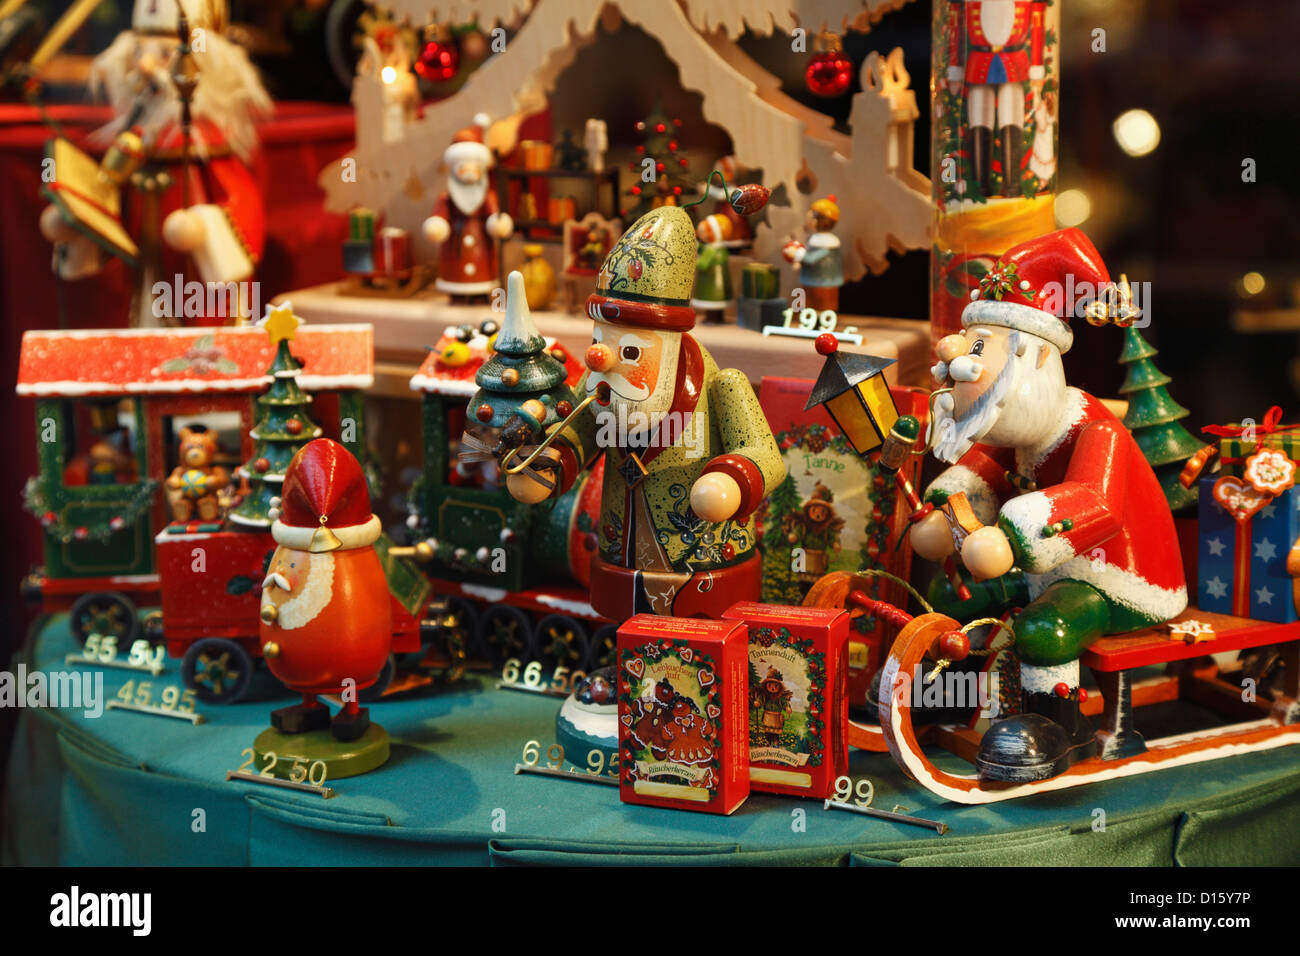 Toys At Christmas : Vintage look christmas toys and decorations in a store